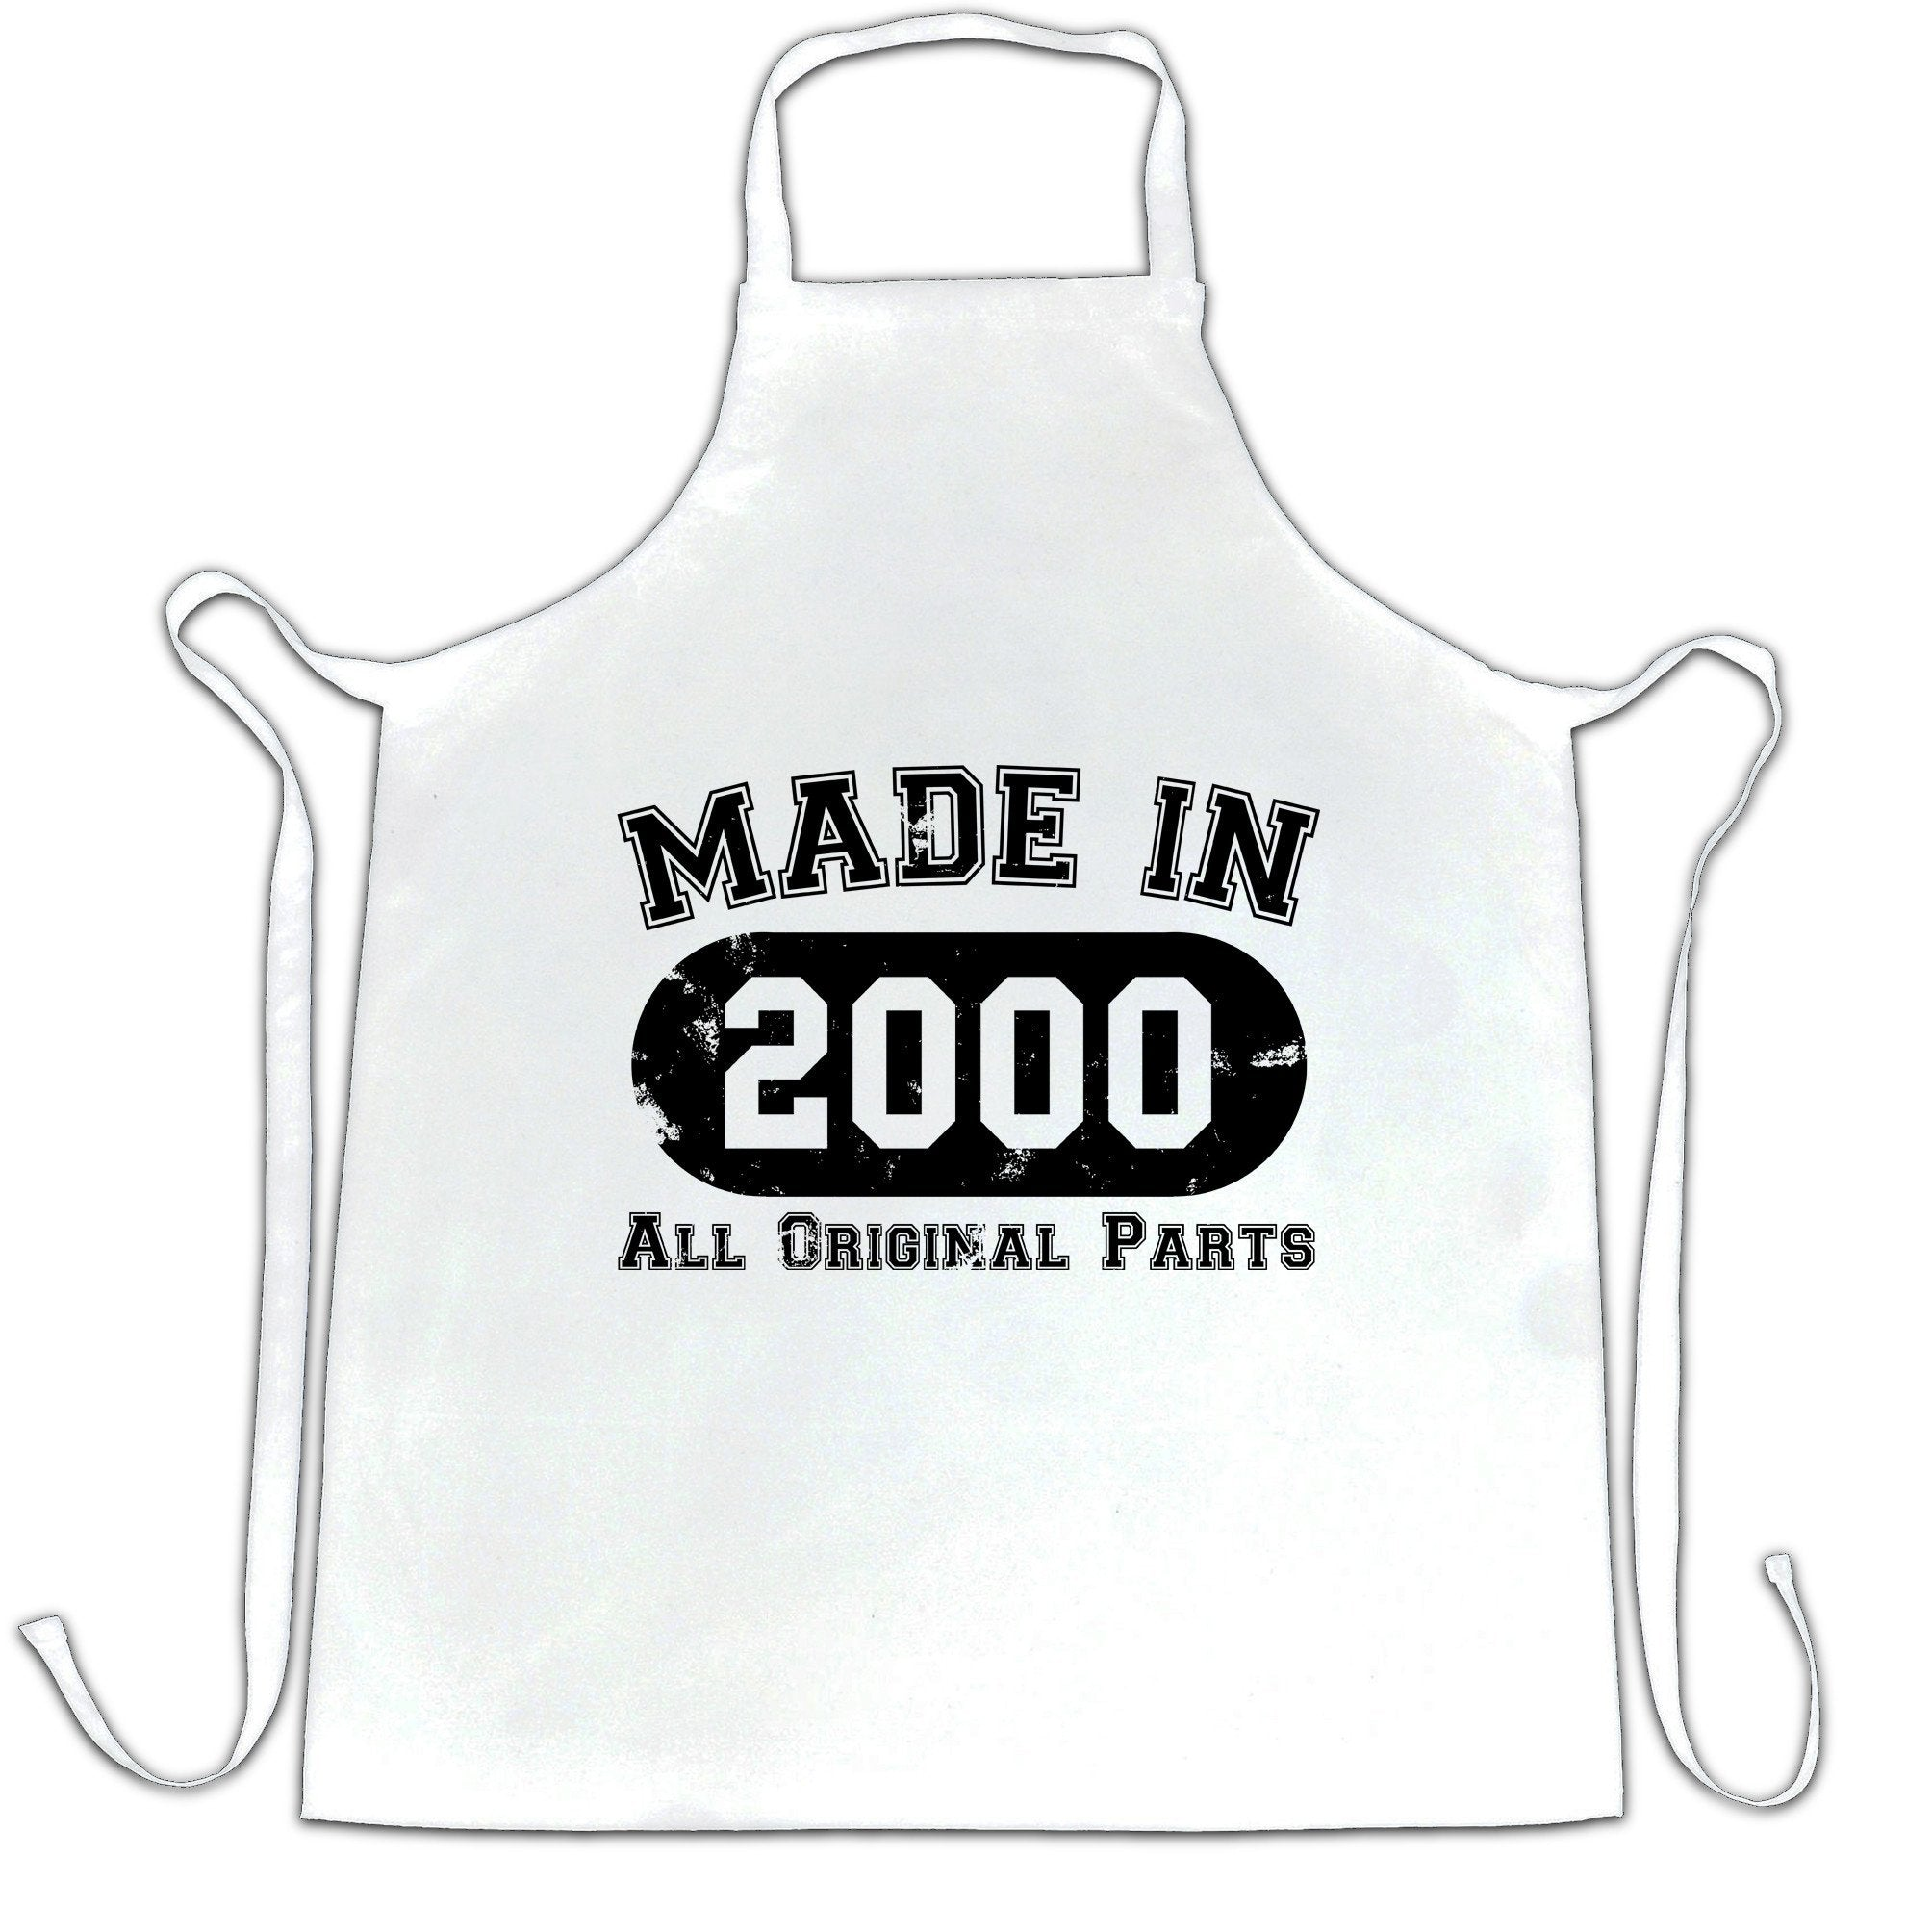 Made in 2000 All Original Parts Apron [Distressed]